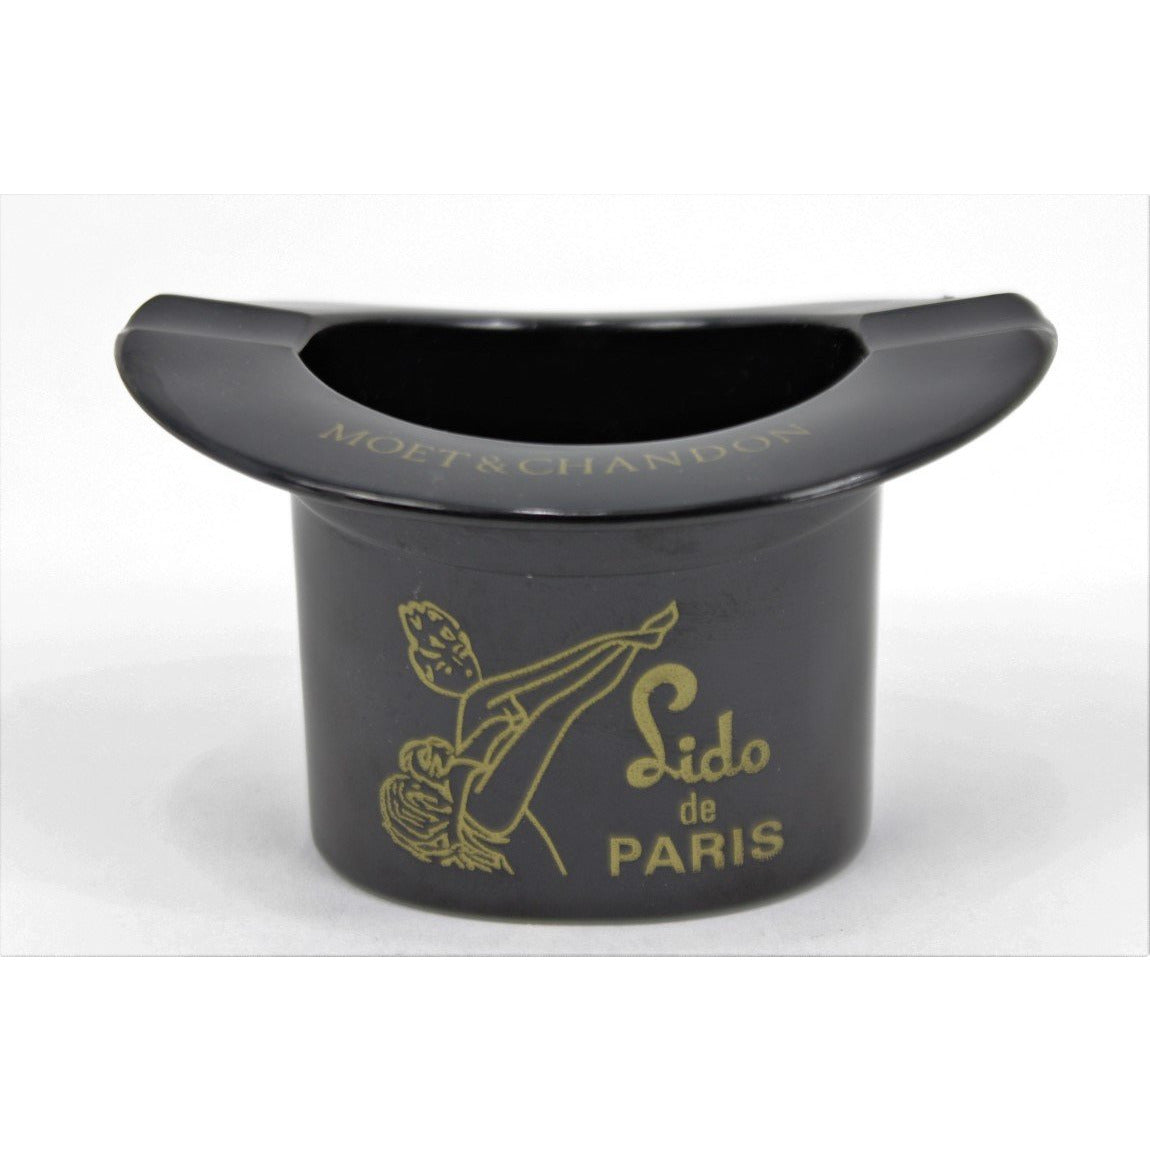 Lido de Paris Moet & Chandon Black Bakelite Tophat